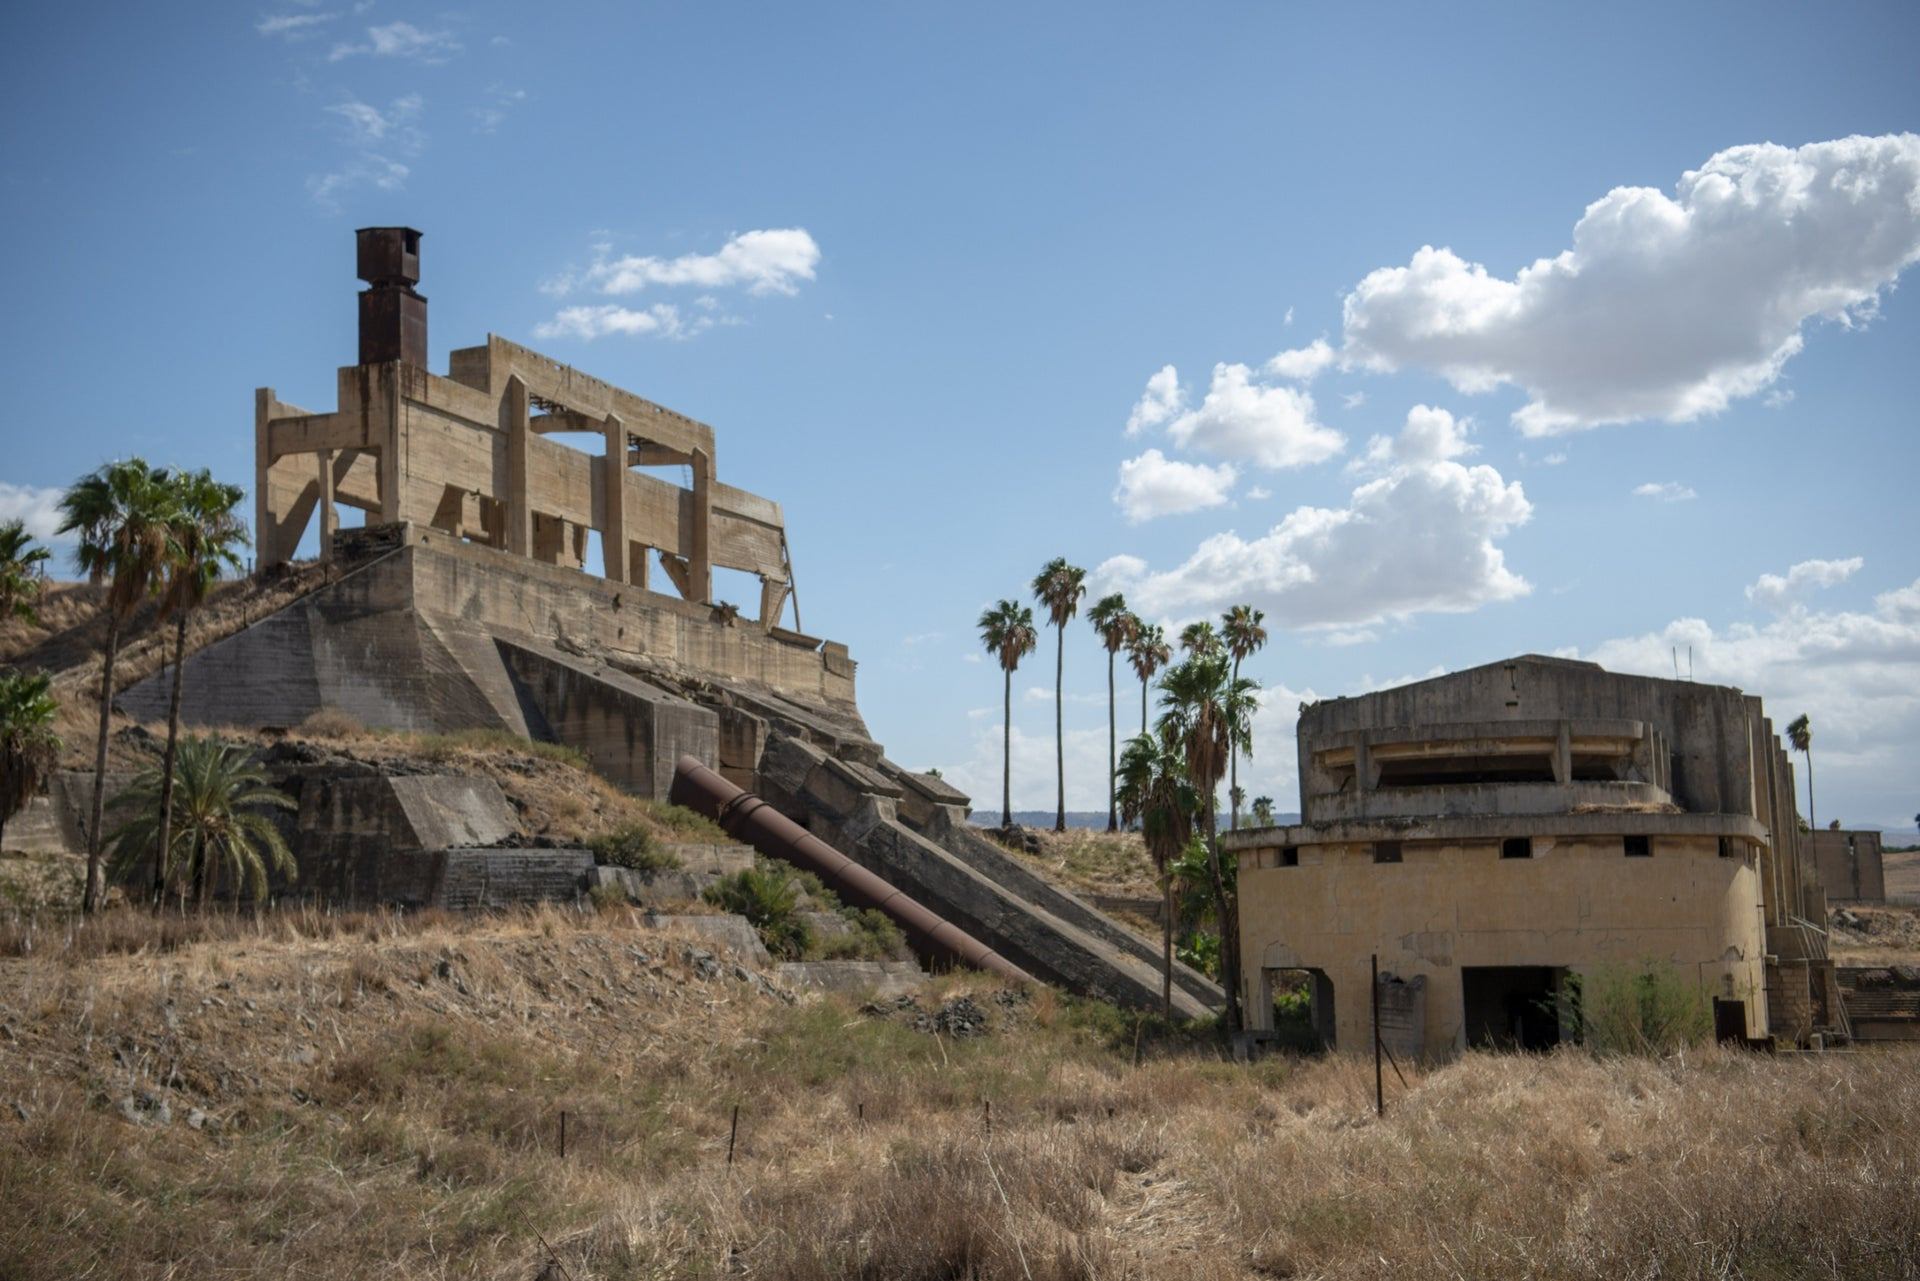 The old hydroelectric power station in Naharayim. Provided power to the whole of the north during late British Mandatory Palestine times.